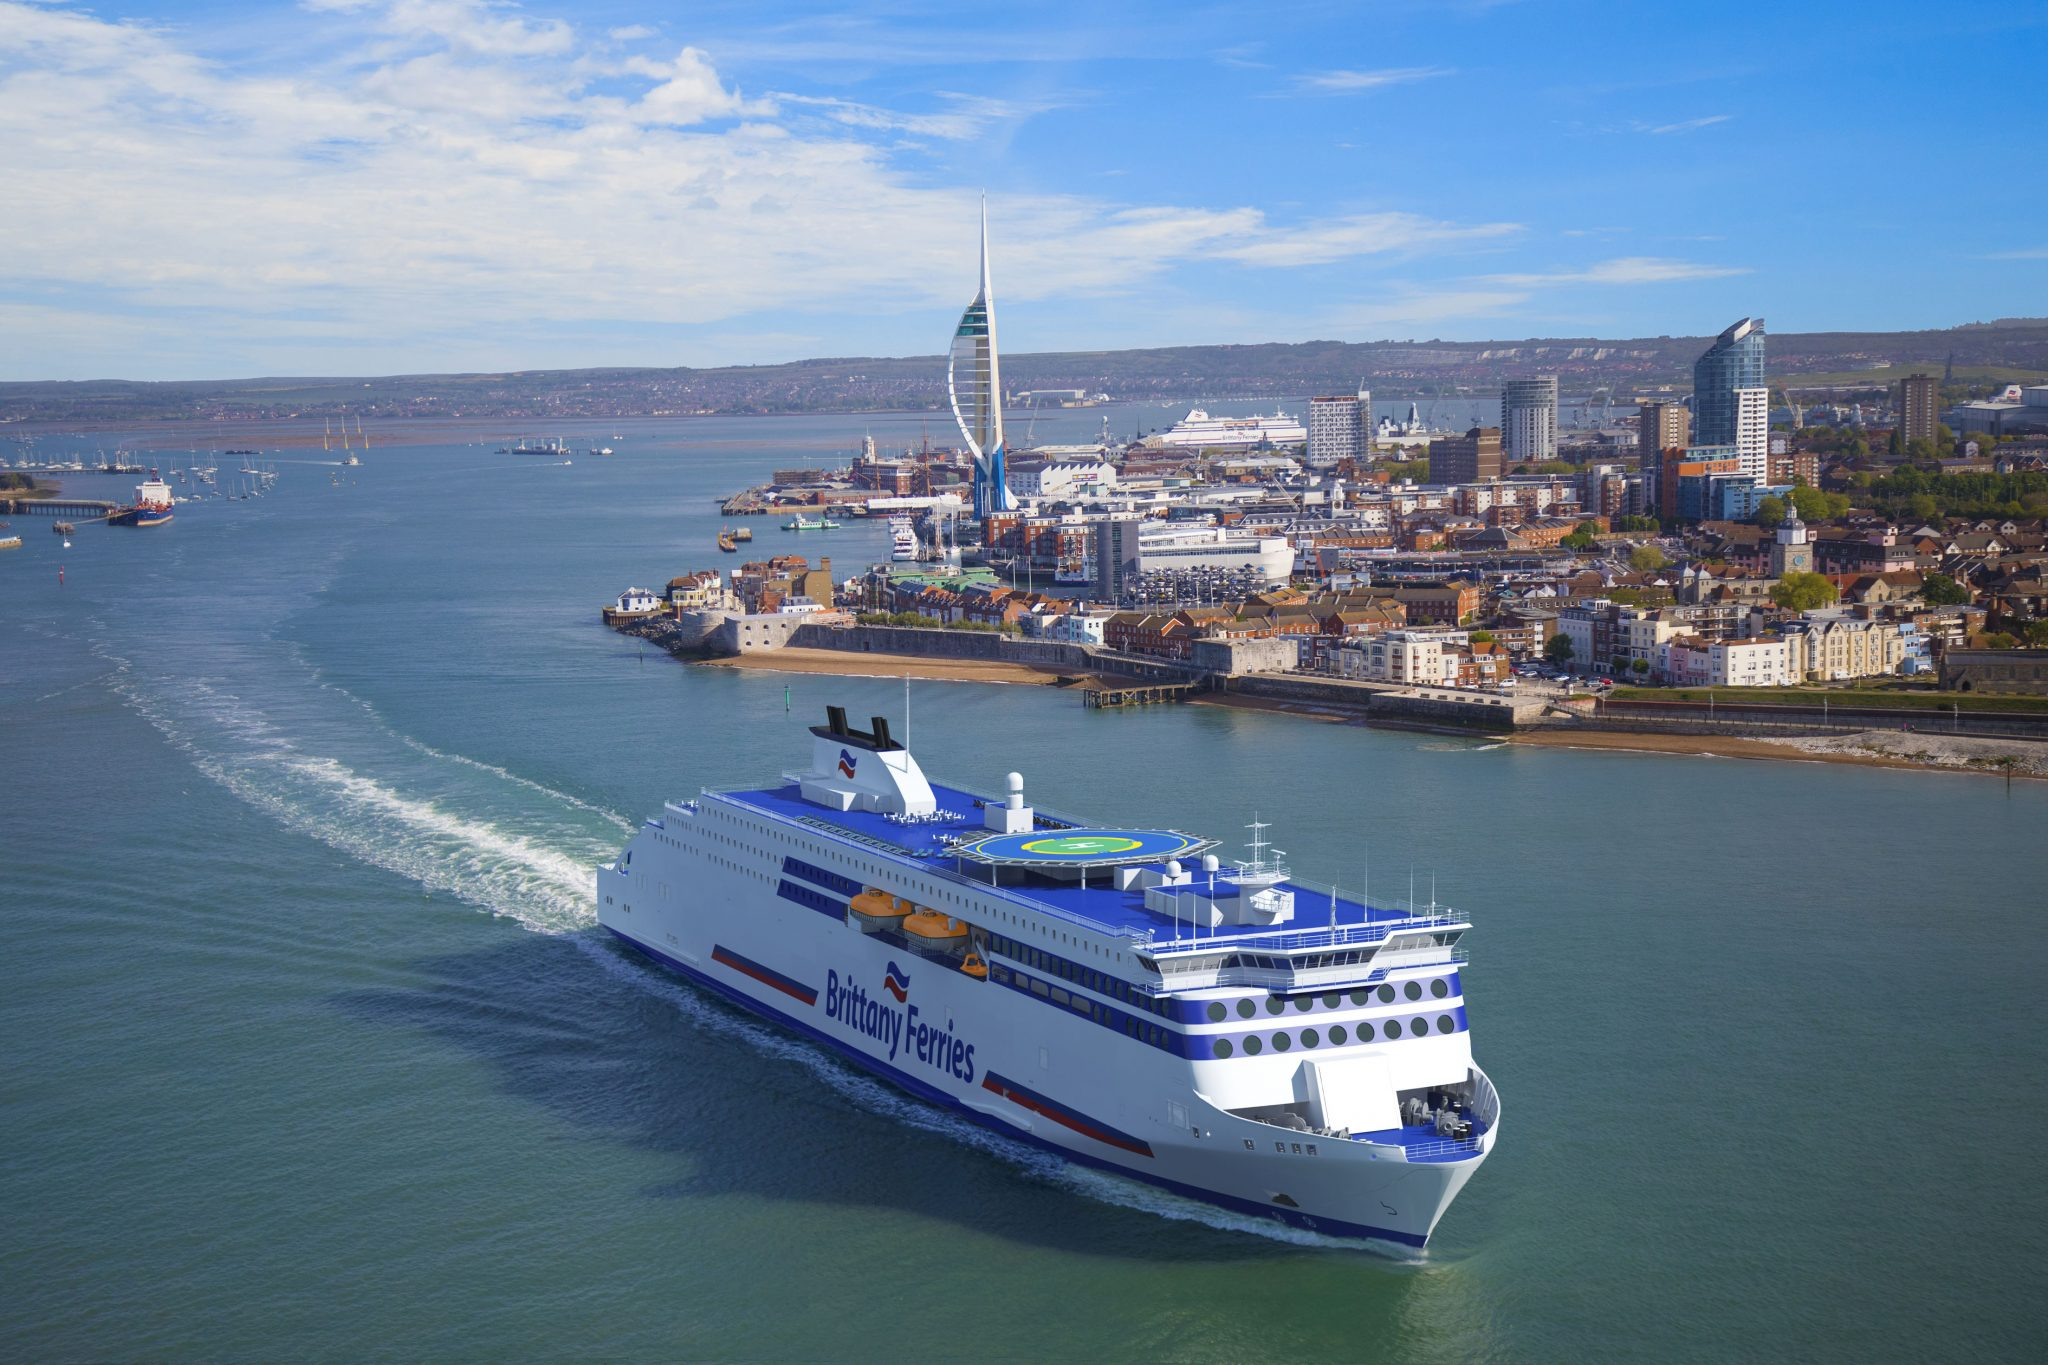 brittany ferries invests in two new cruise ferries for long haul spanish routes discover ferries. Black Bedroom Furniture Sets. Home Design Ideas